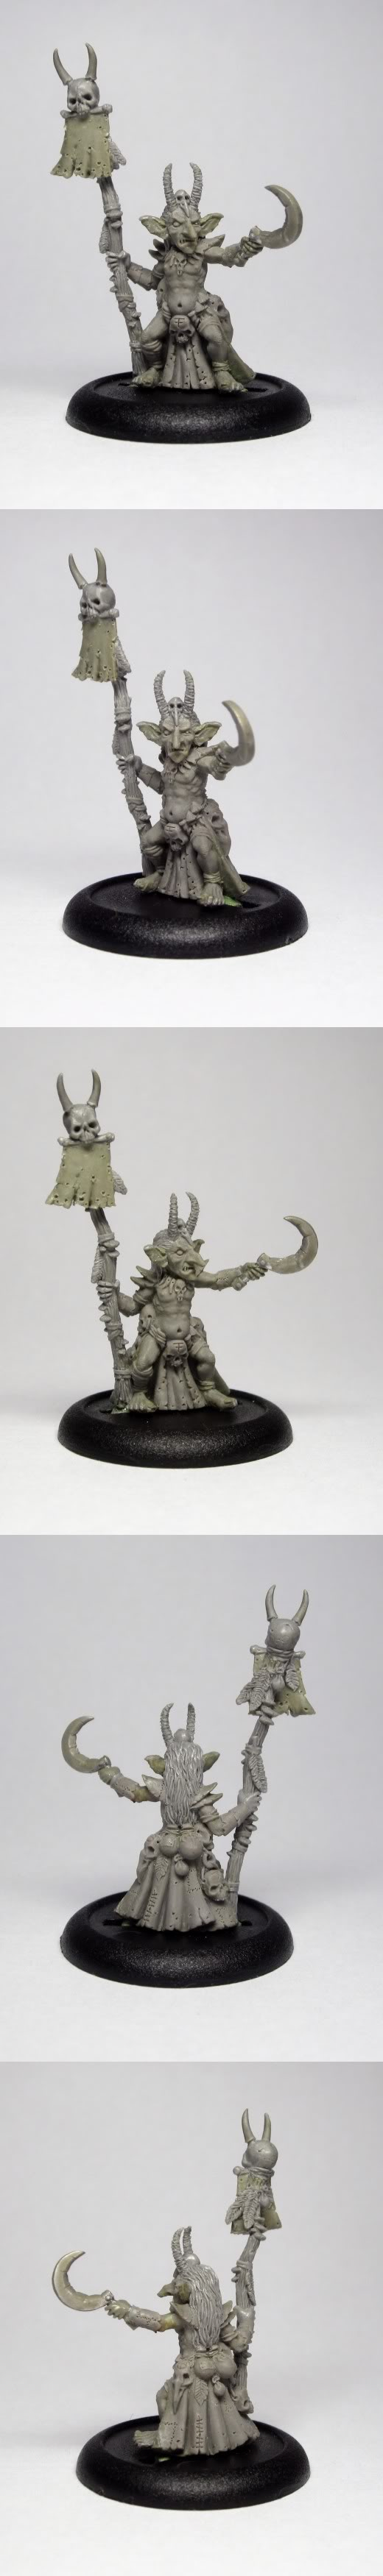 Guild of Harmony Goblin-shaman-sculpt